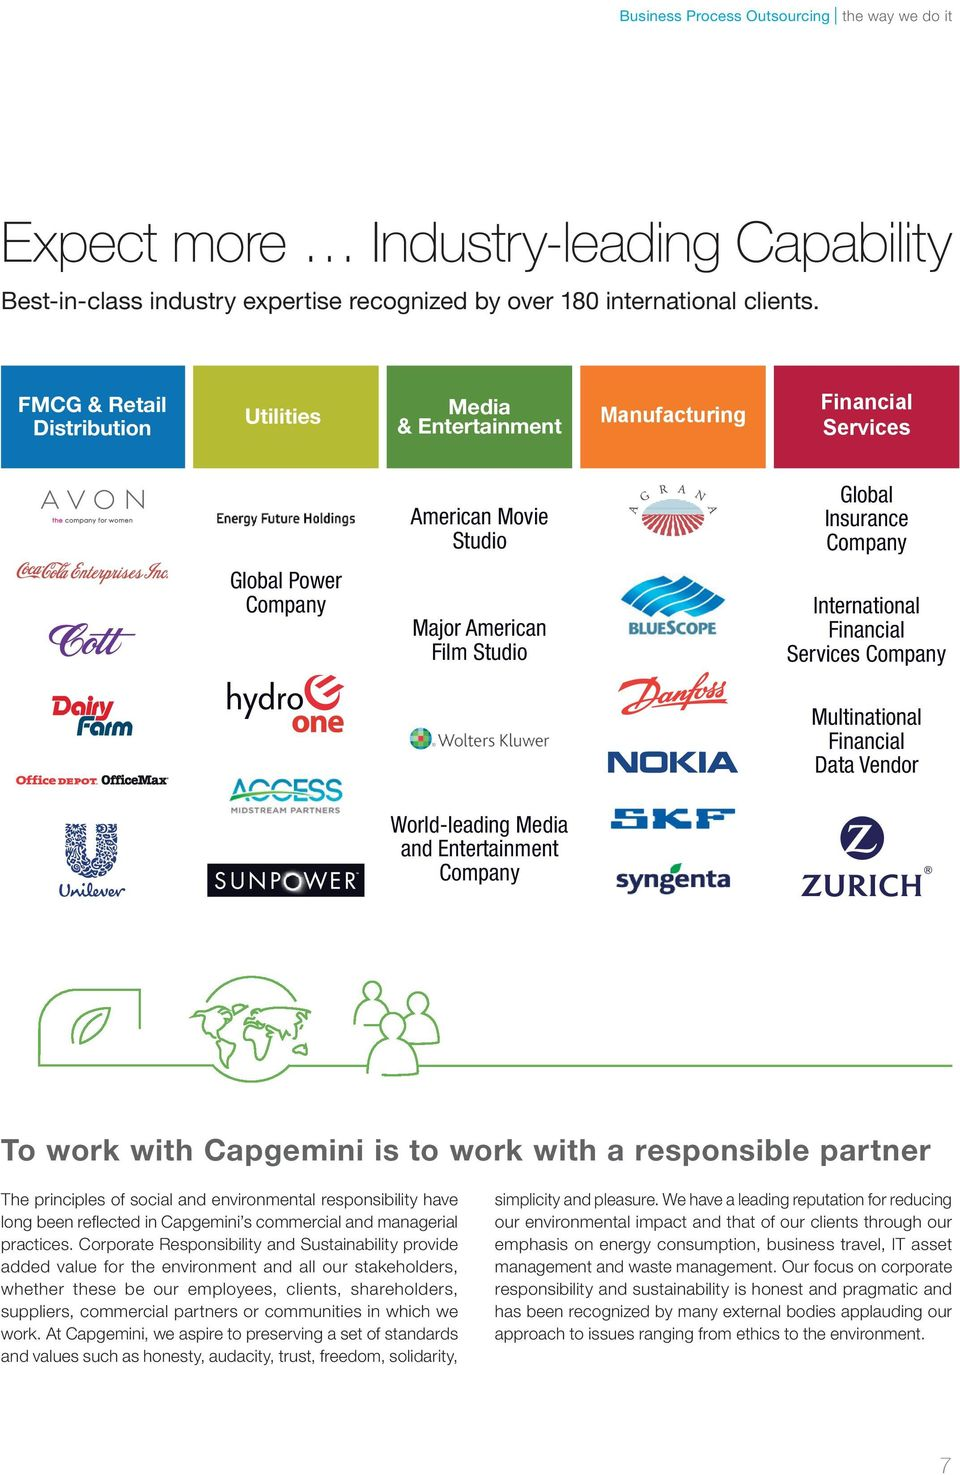 Financial Company Multinational Financial Data Vendor World-leading Media and Entertainment Company To work with Capgemini is to work with a responsible partner The principles of social and